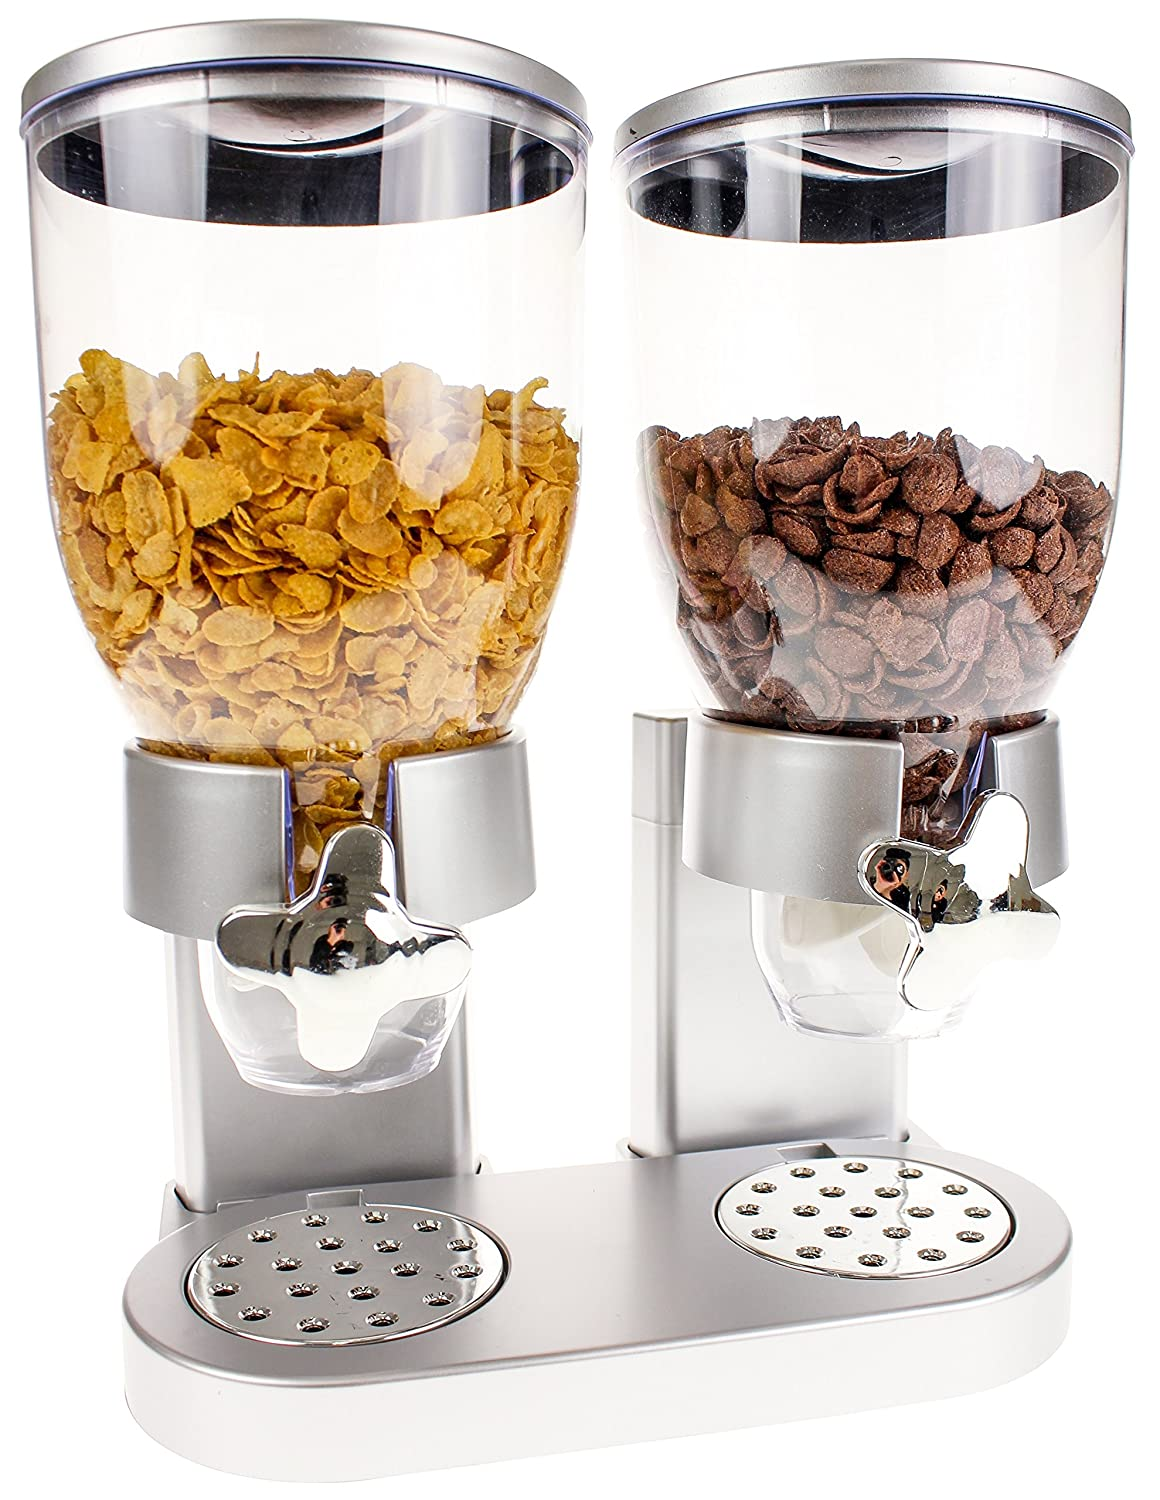 United Entertainment - Dispensador/muesli y Cereales Dispensador/Corn Flak dispensador/Doble de dispensador para Cereales, Corn Flakes y Cereales - Plata: ...